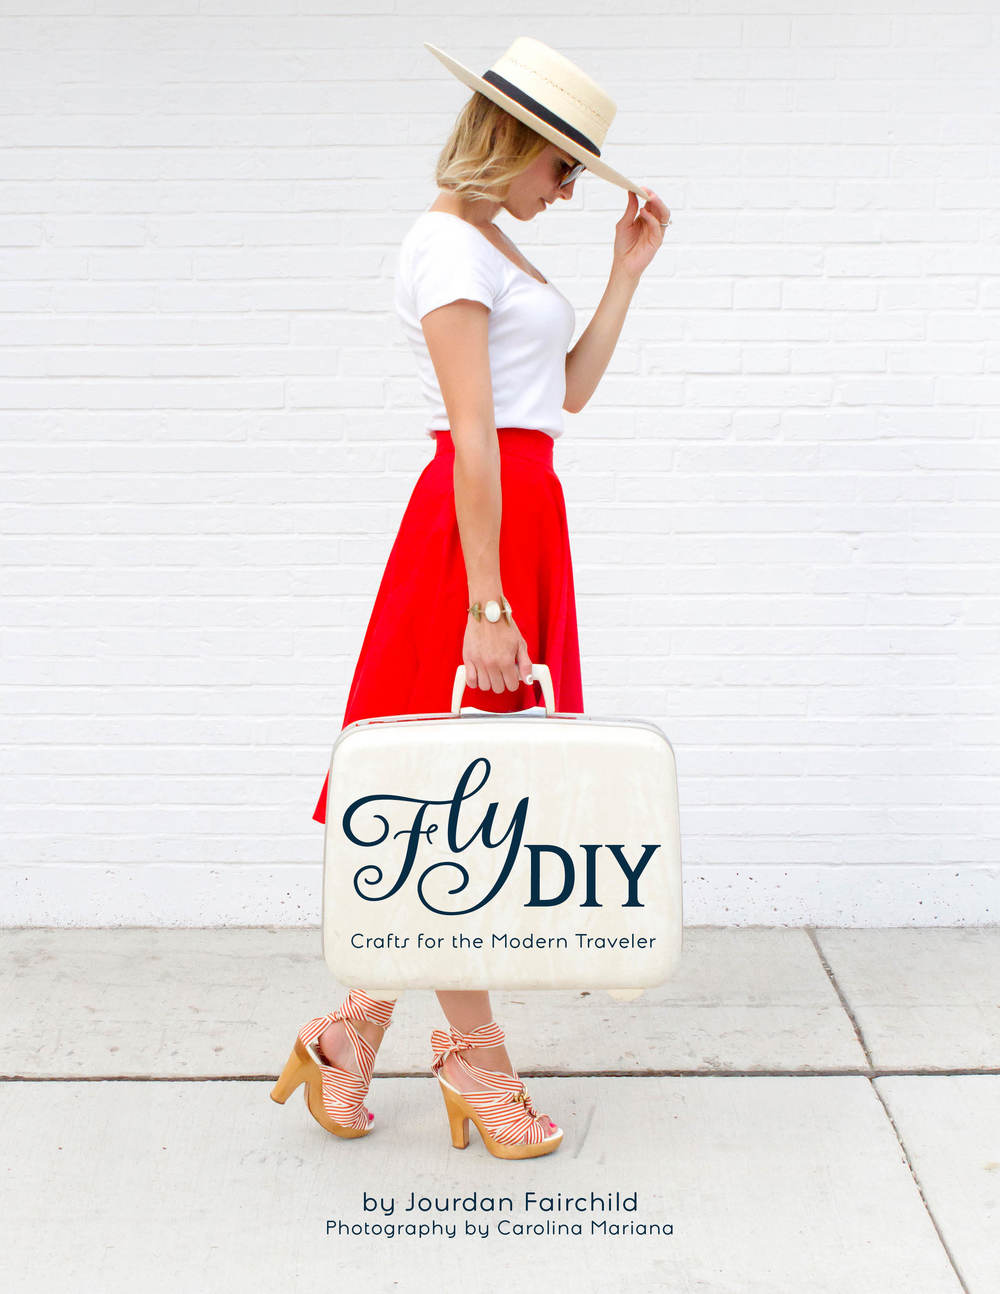 Fly DIY e-book #giveaway! Ends 8/20. | www.paperplatesblog.com